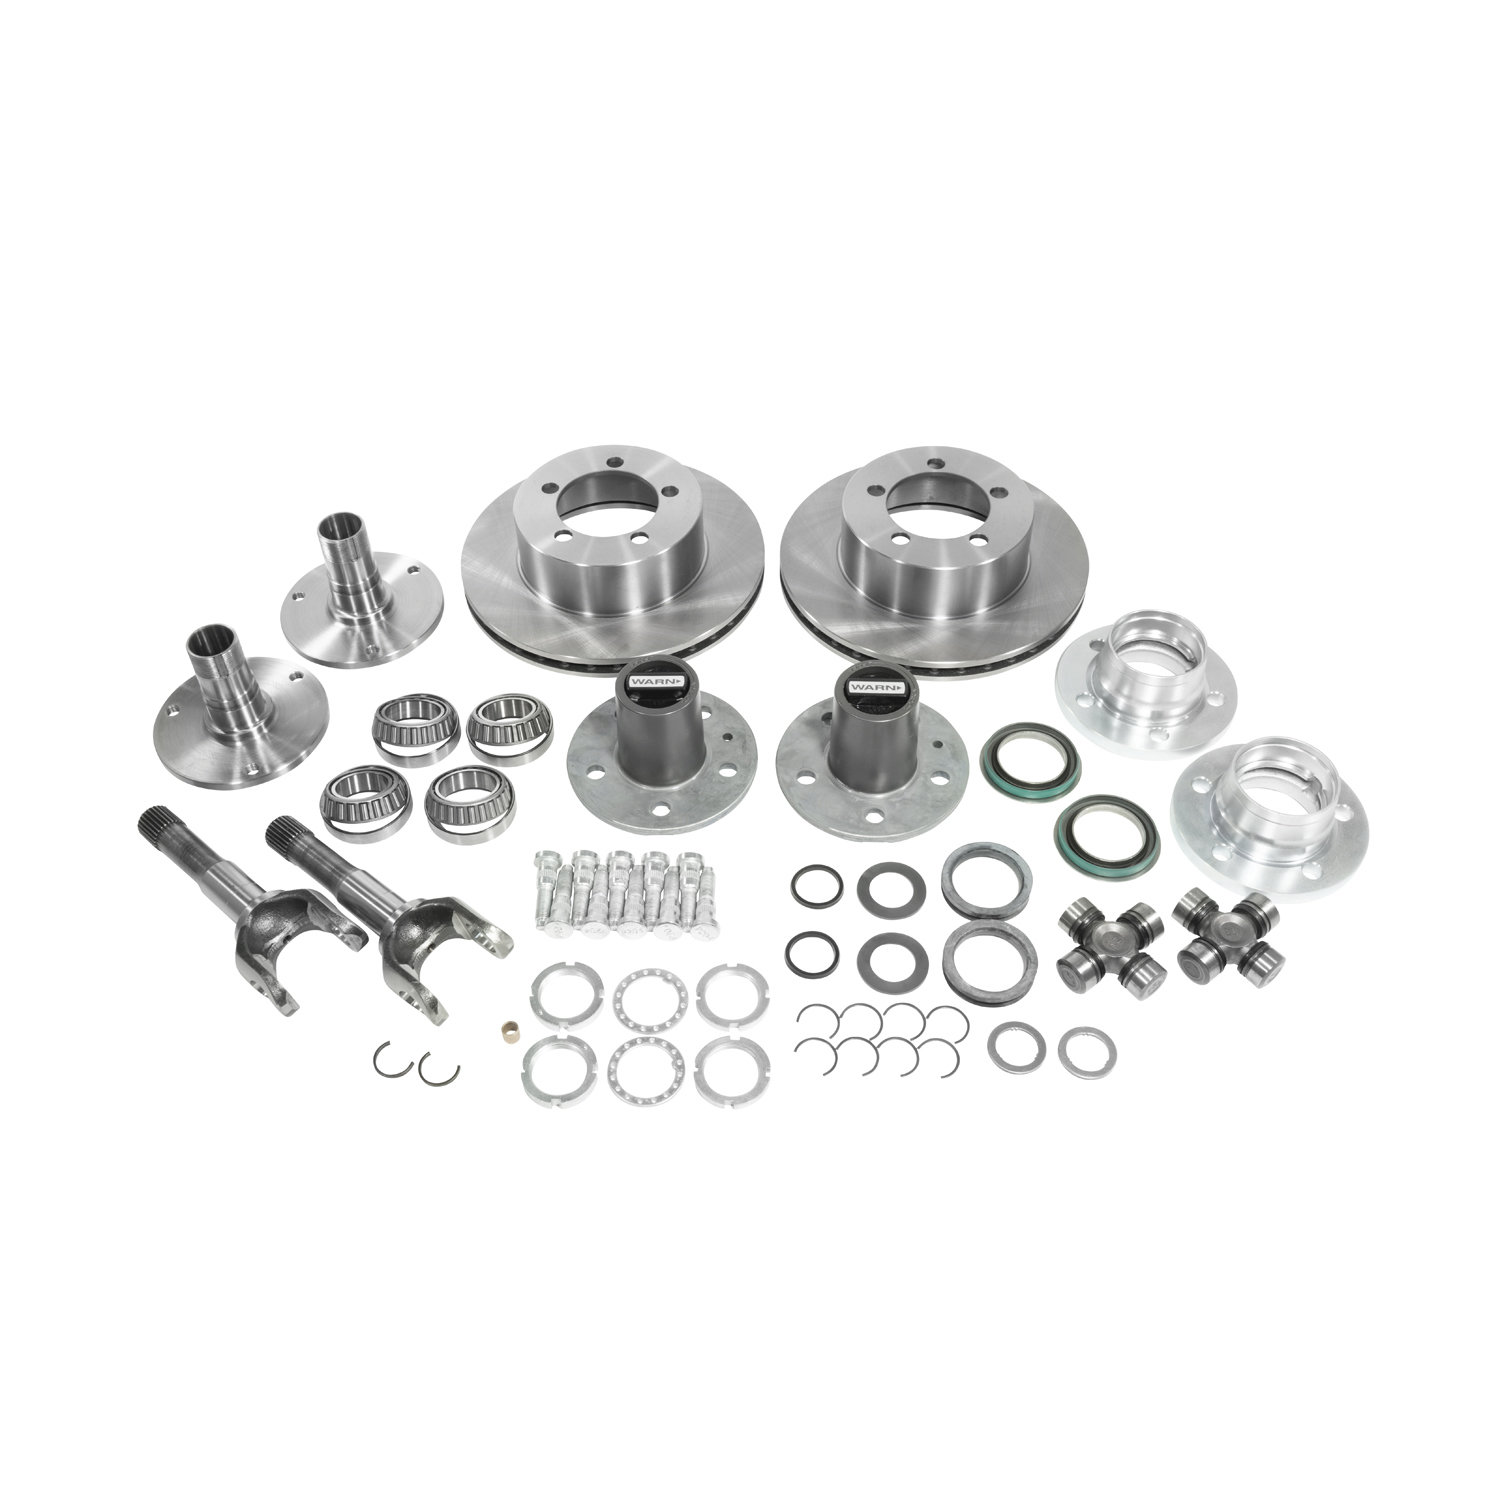 Yukon Gear Amp Axle Spin Free Locking Hub Conversion Kit For